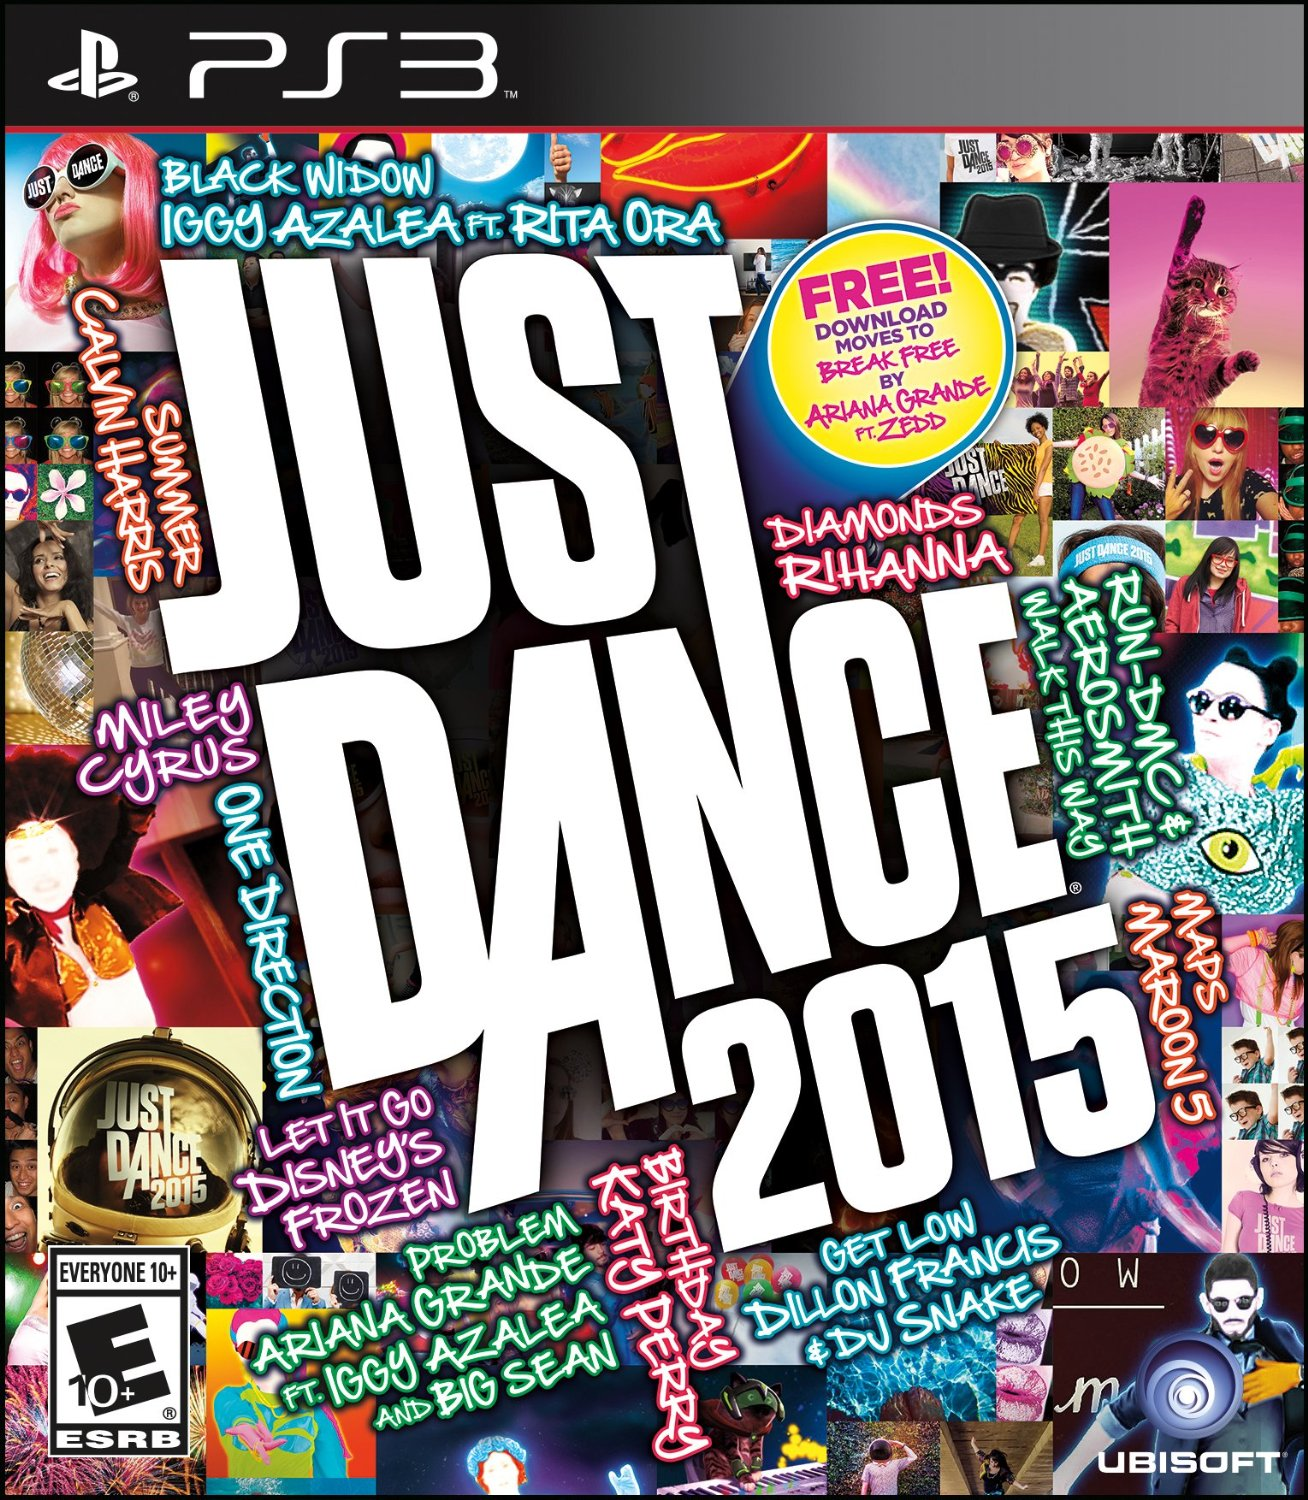 Datei:Ps32015cover.jpg